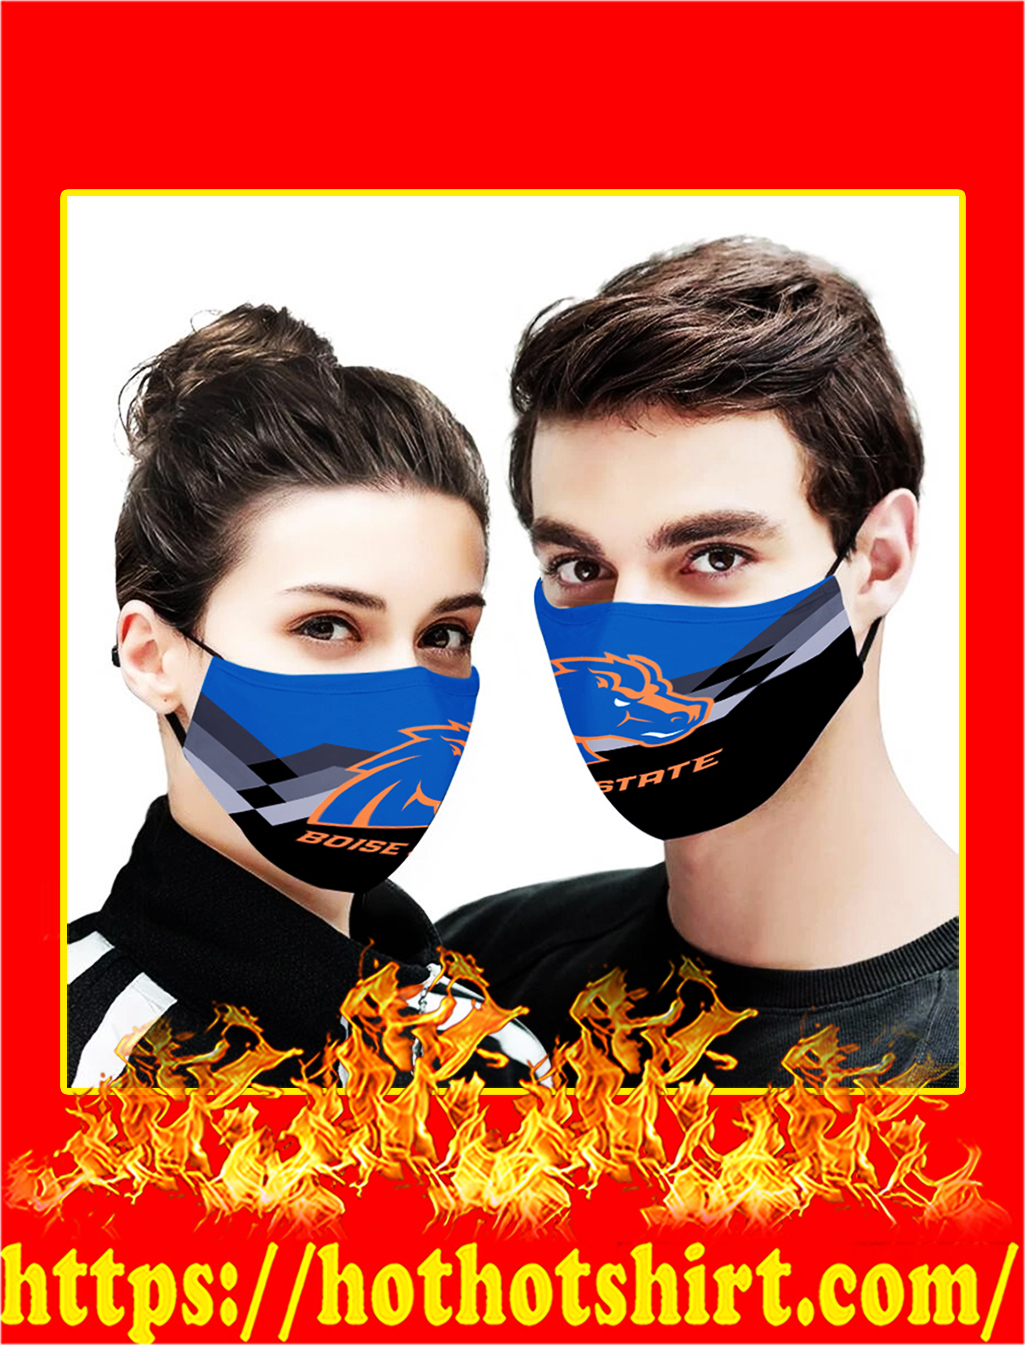 Boise State 3d face mask- pic 1